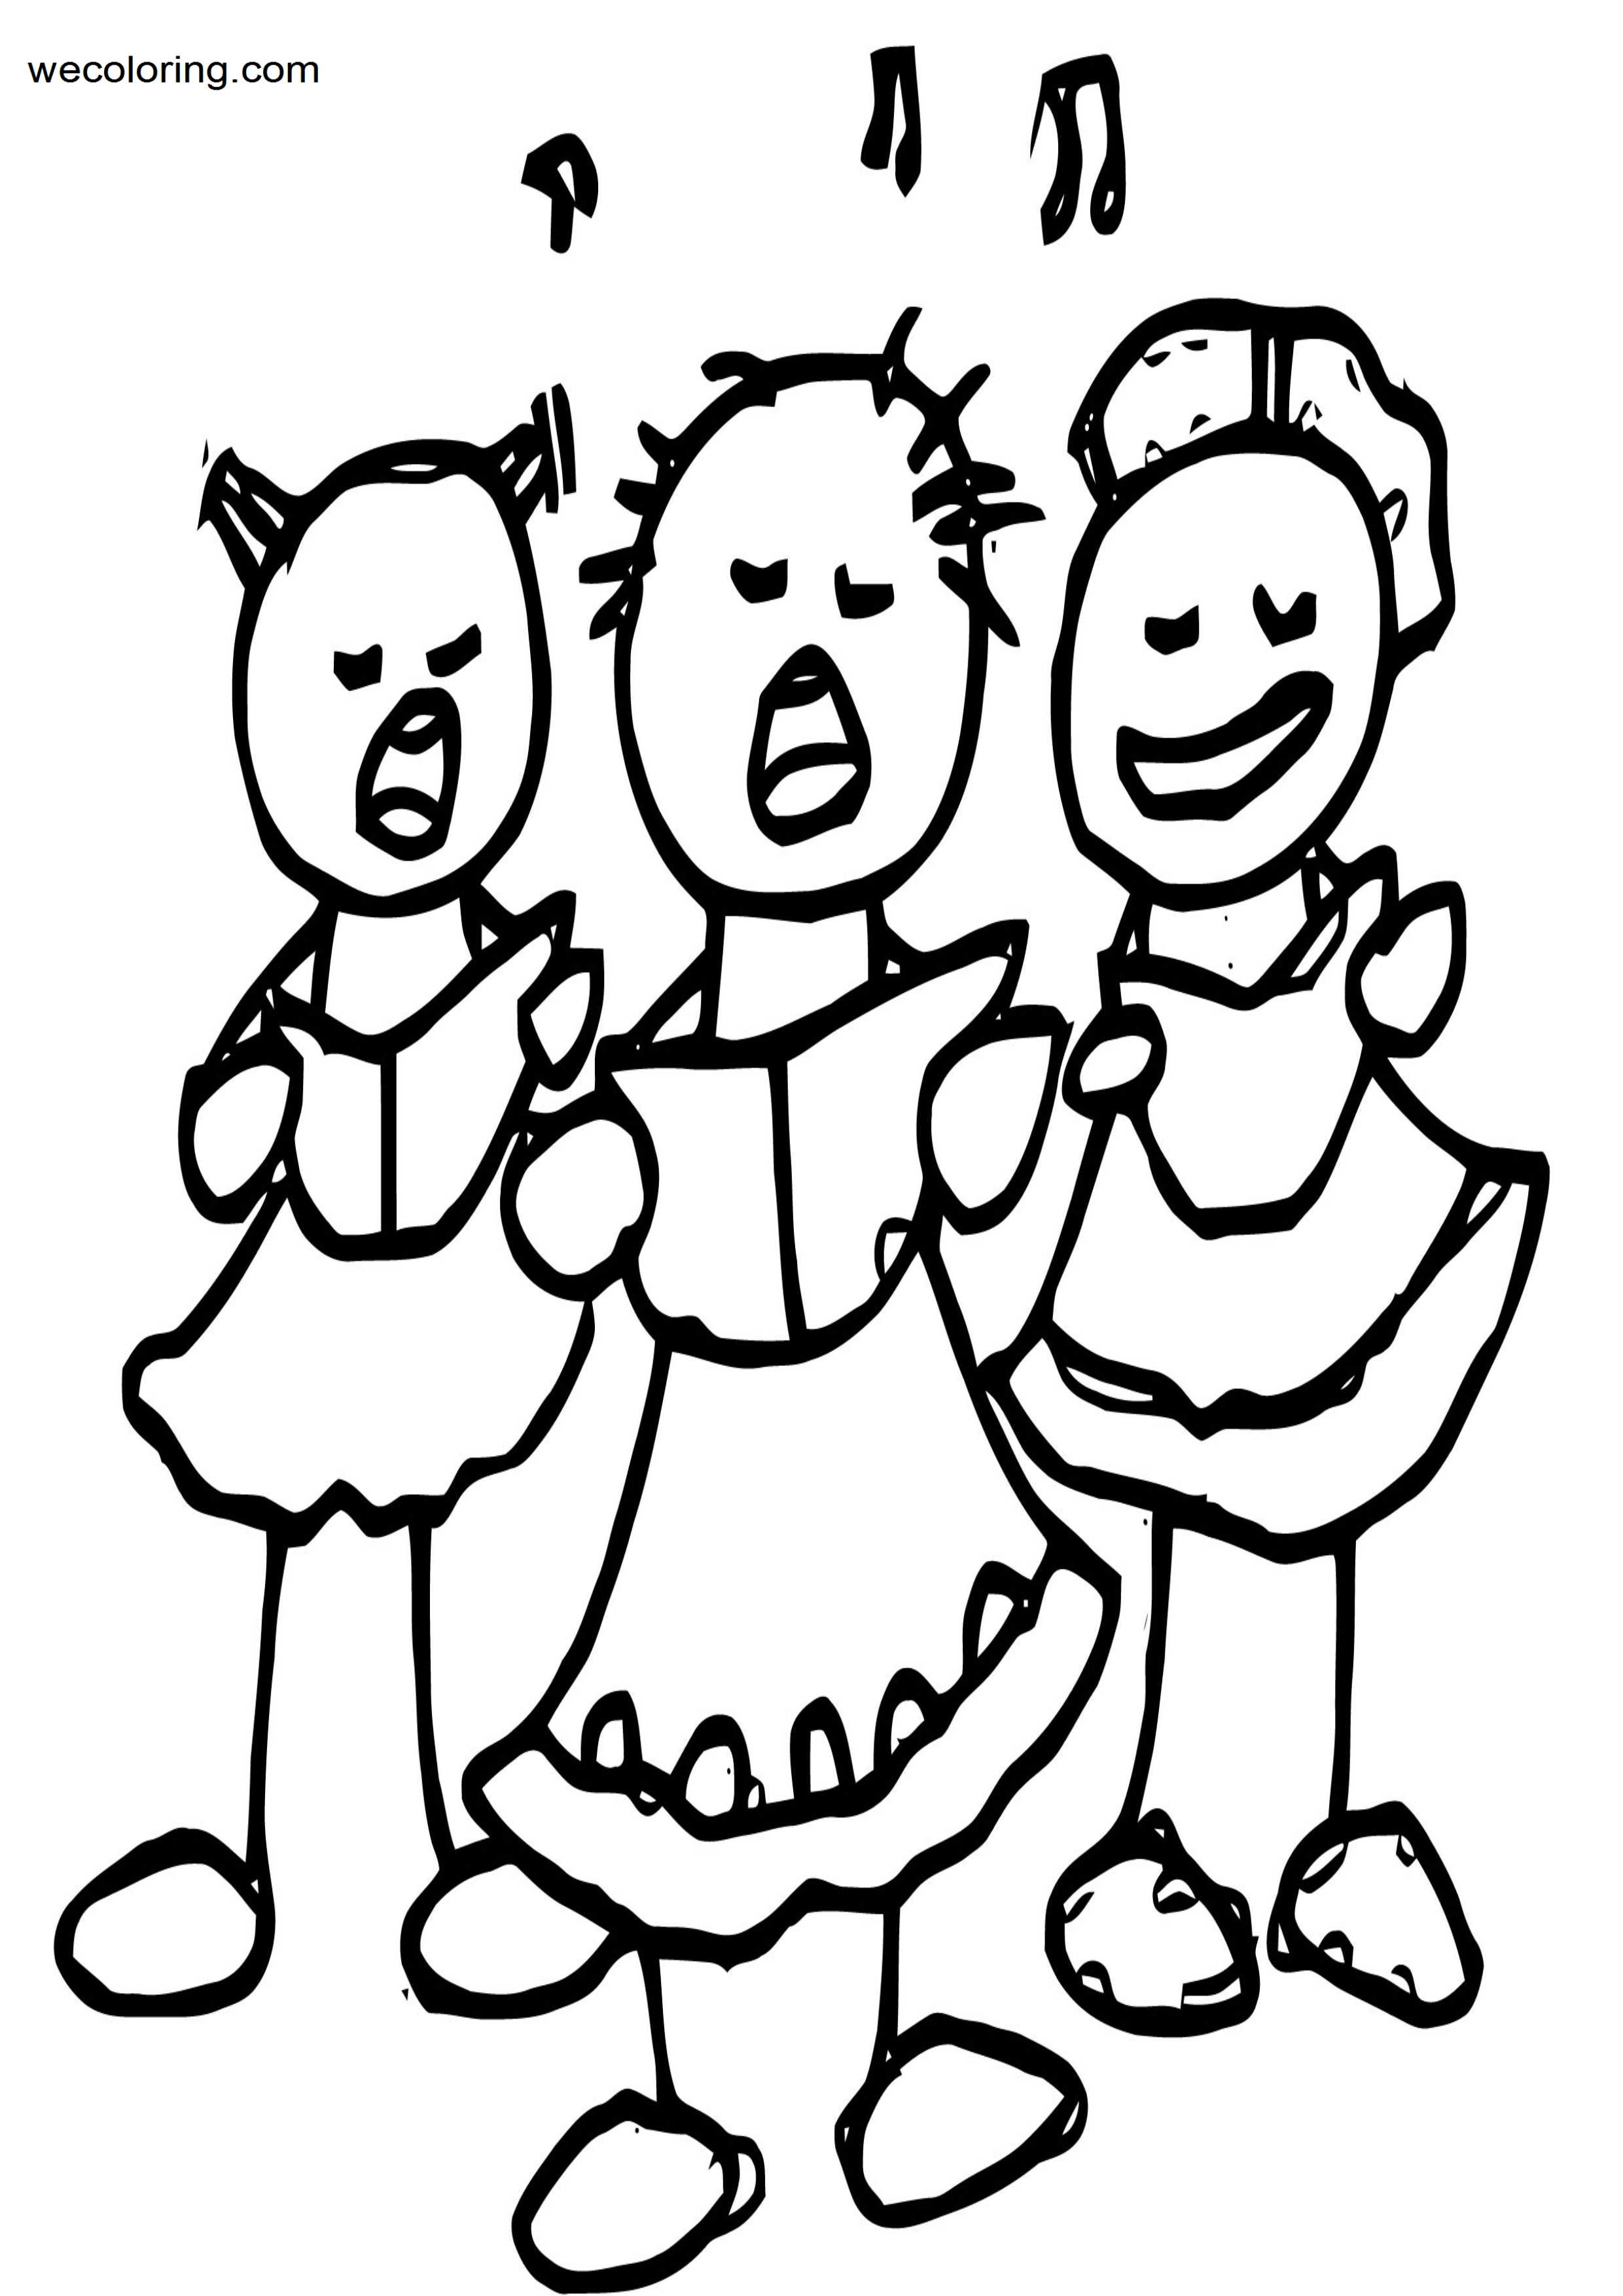 coloring pages 3rd grade 3rd grade coloring page wecoloring grade 3rd pages coloring